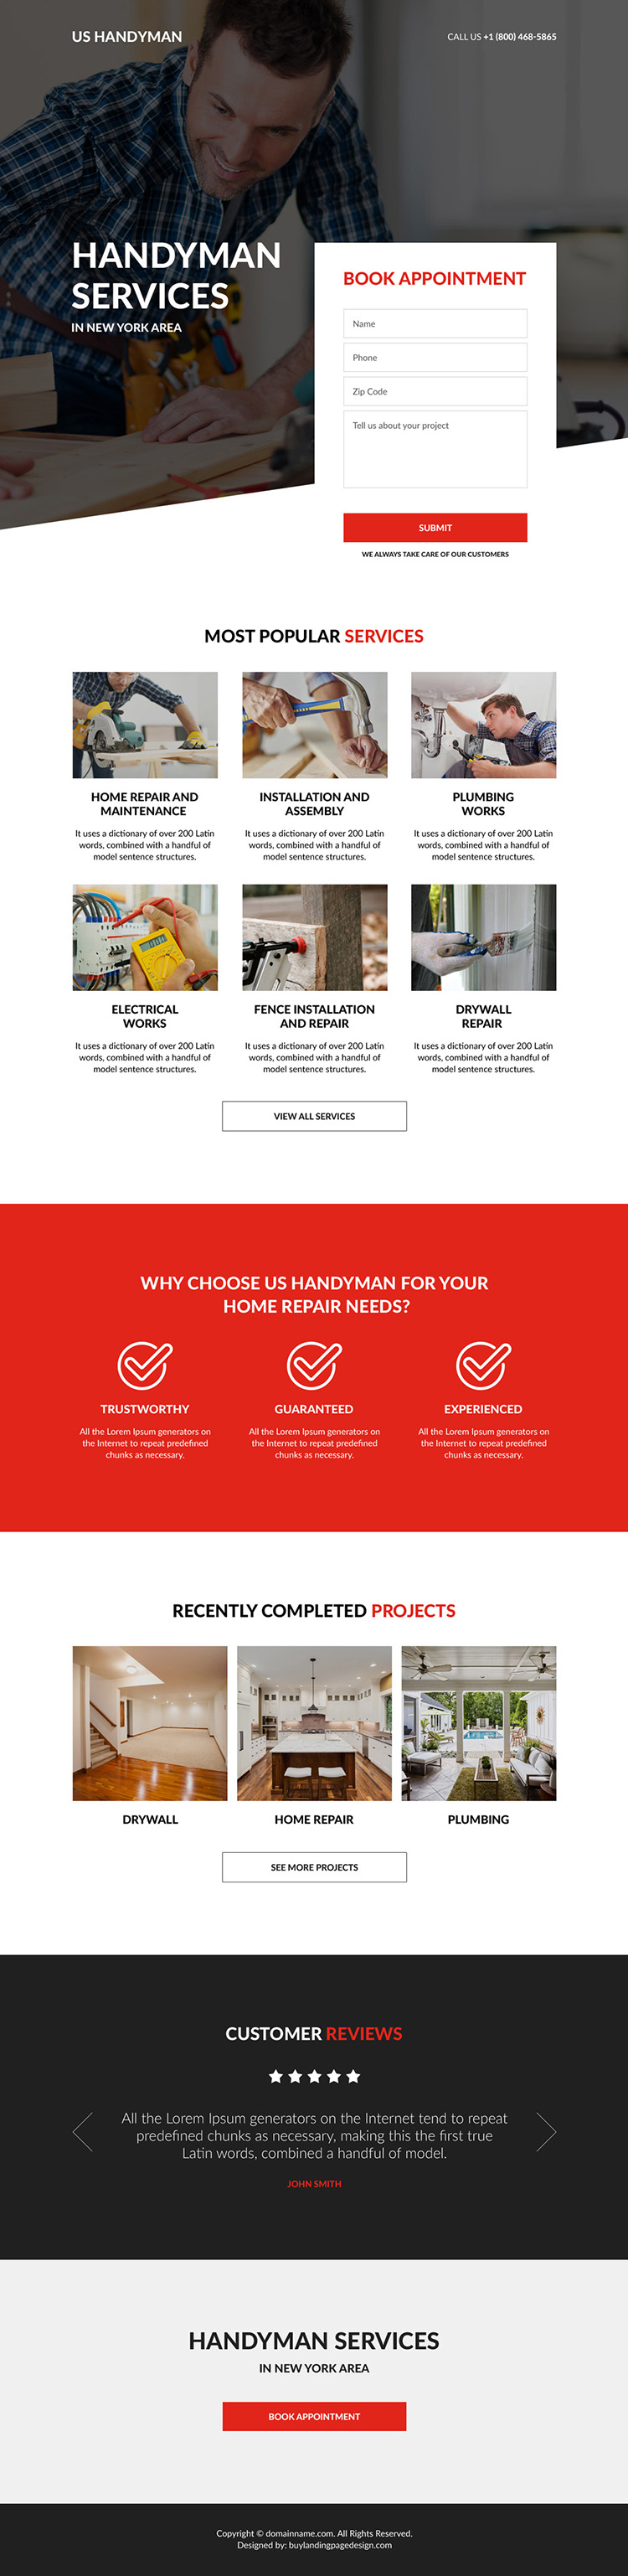 handyman service appointment booking landing page design